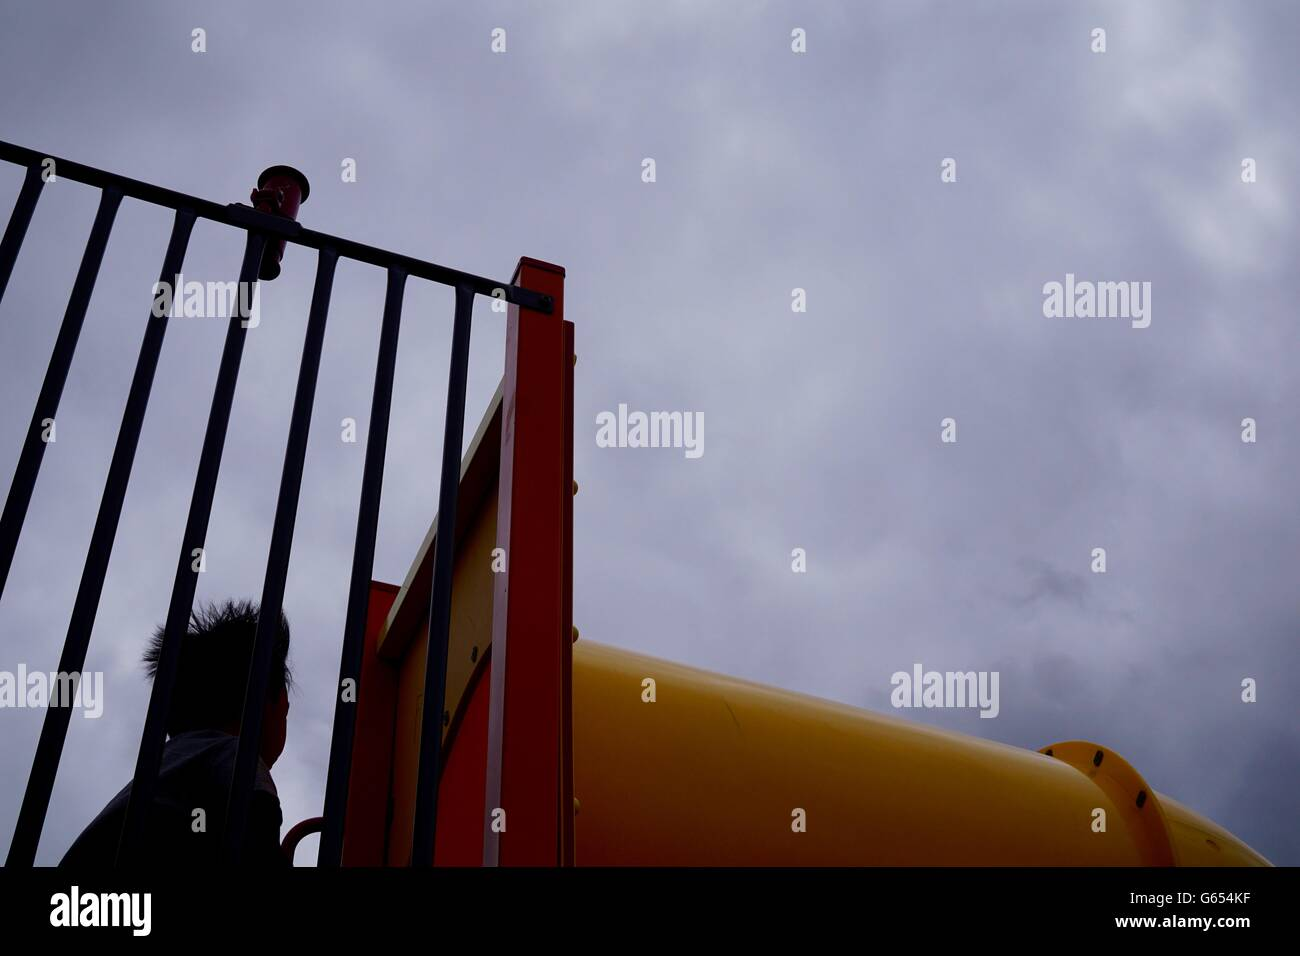 Boy looking up at overcast sky in the playground - Stock Image